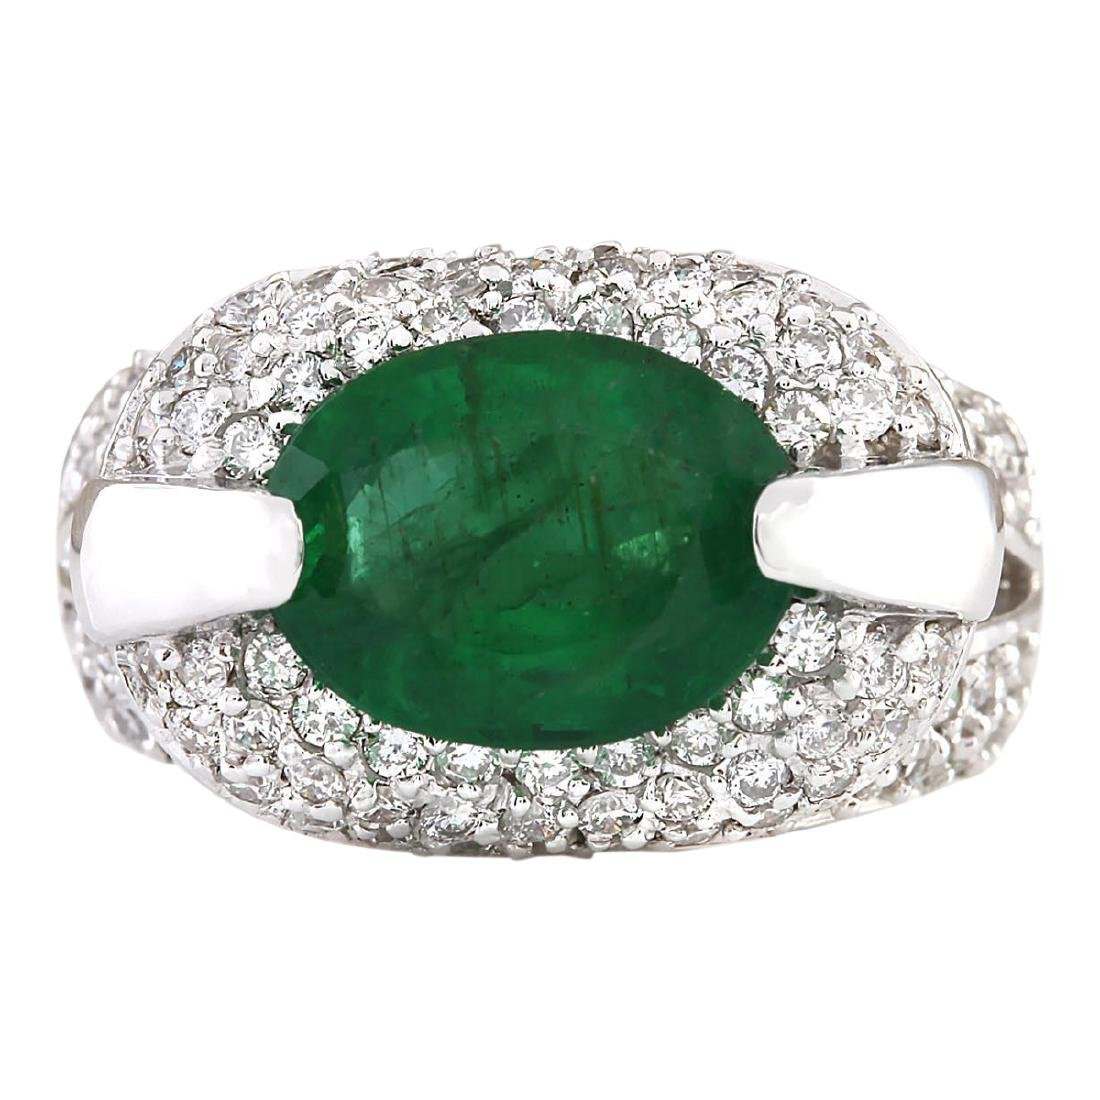 5.08 CTW Natural Emerald And Diamond Ring In 18K White